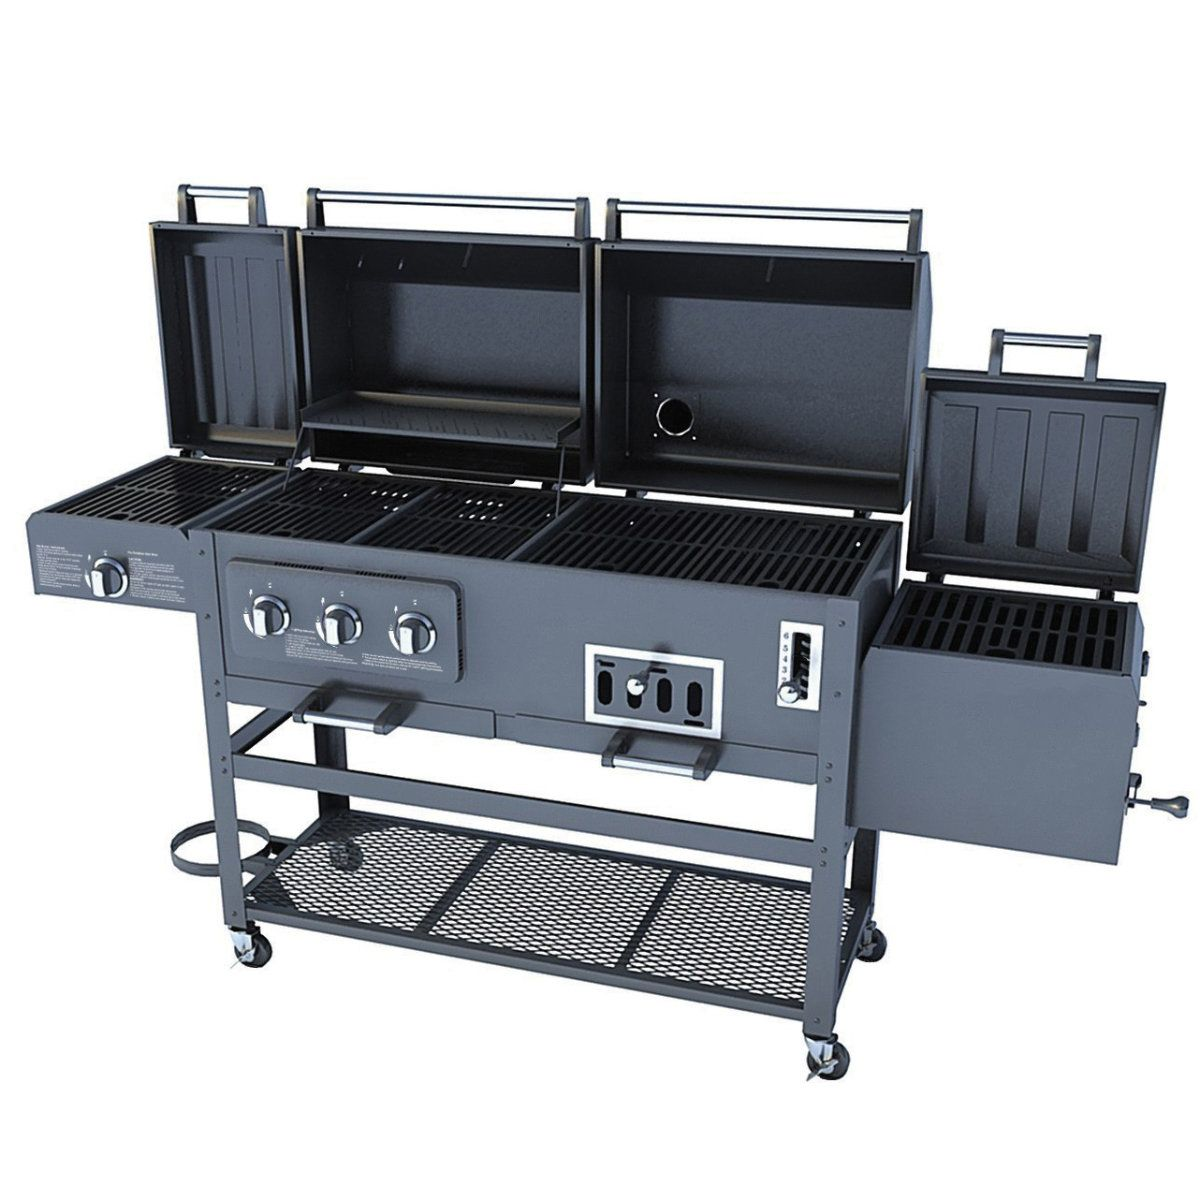 Gander Mountain Smoke Hollow Tri Mate Model 47180t Gas Charcoal Grill Smoker Camping Cooking Appliances Grills Accessories Grills Bbq Smoker Box